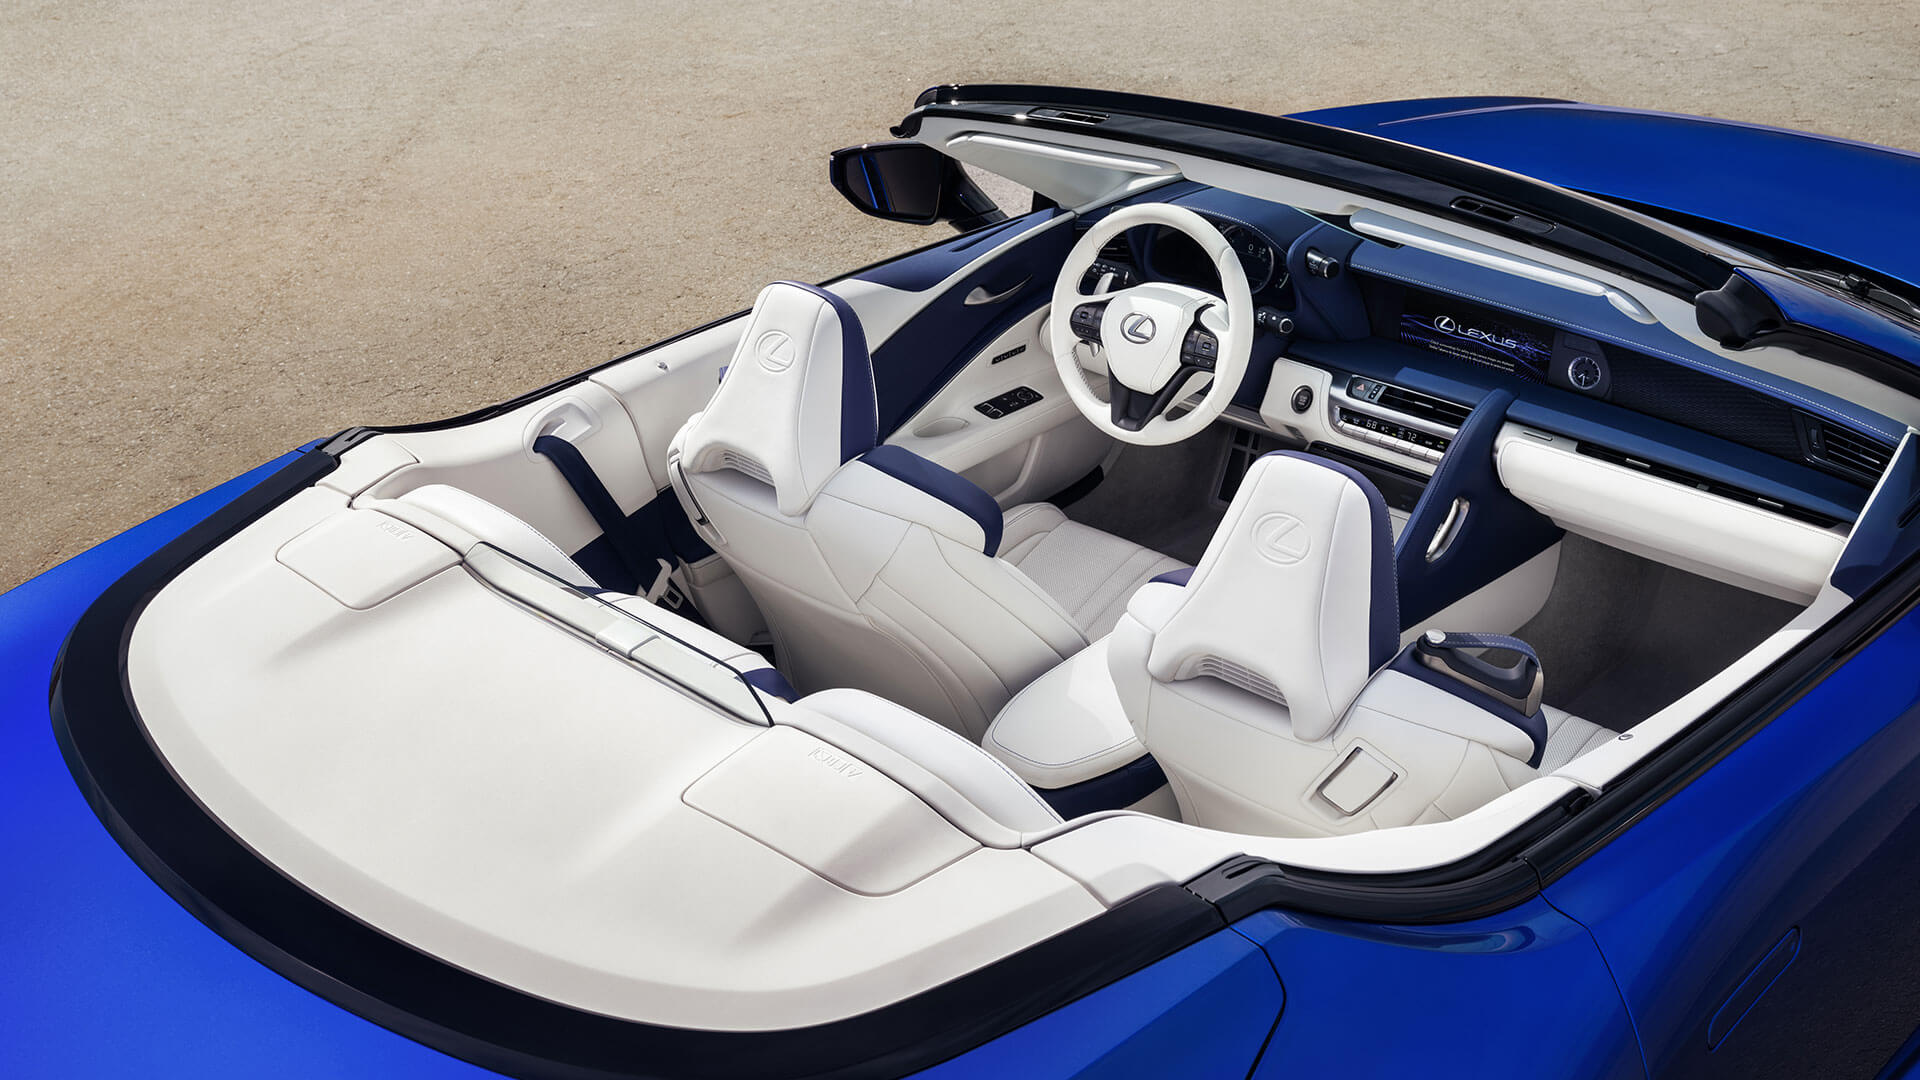 2020 lexus lc covertible gallery 14 exterior